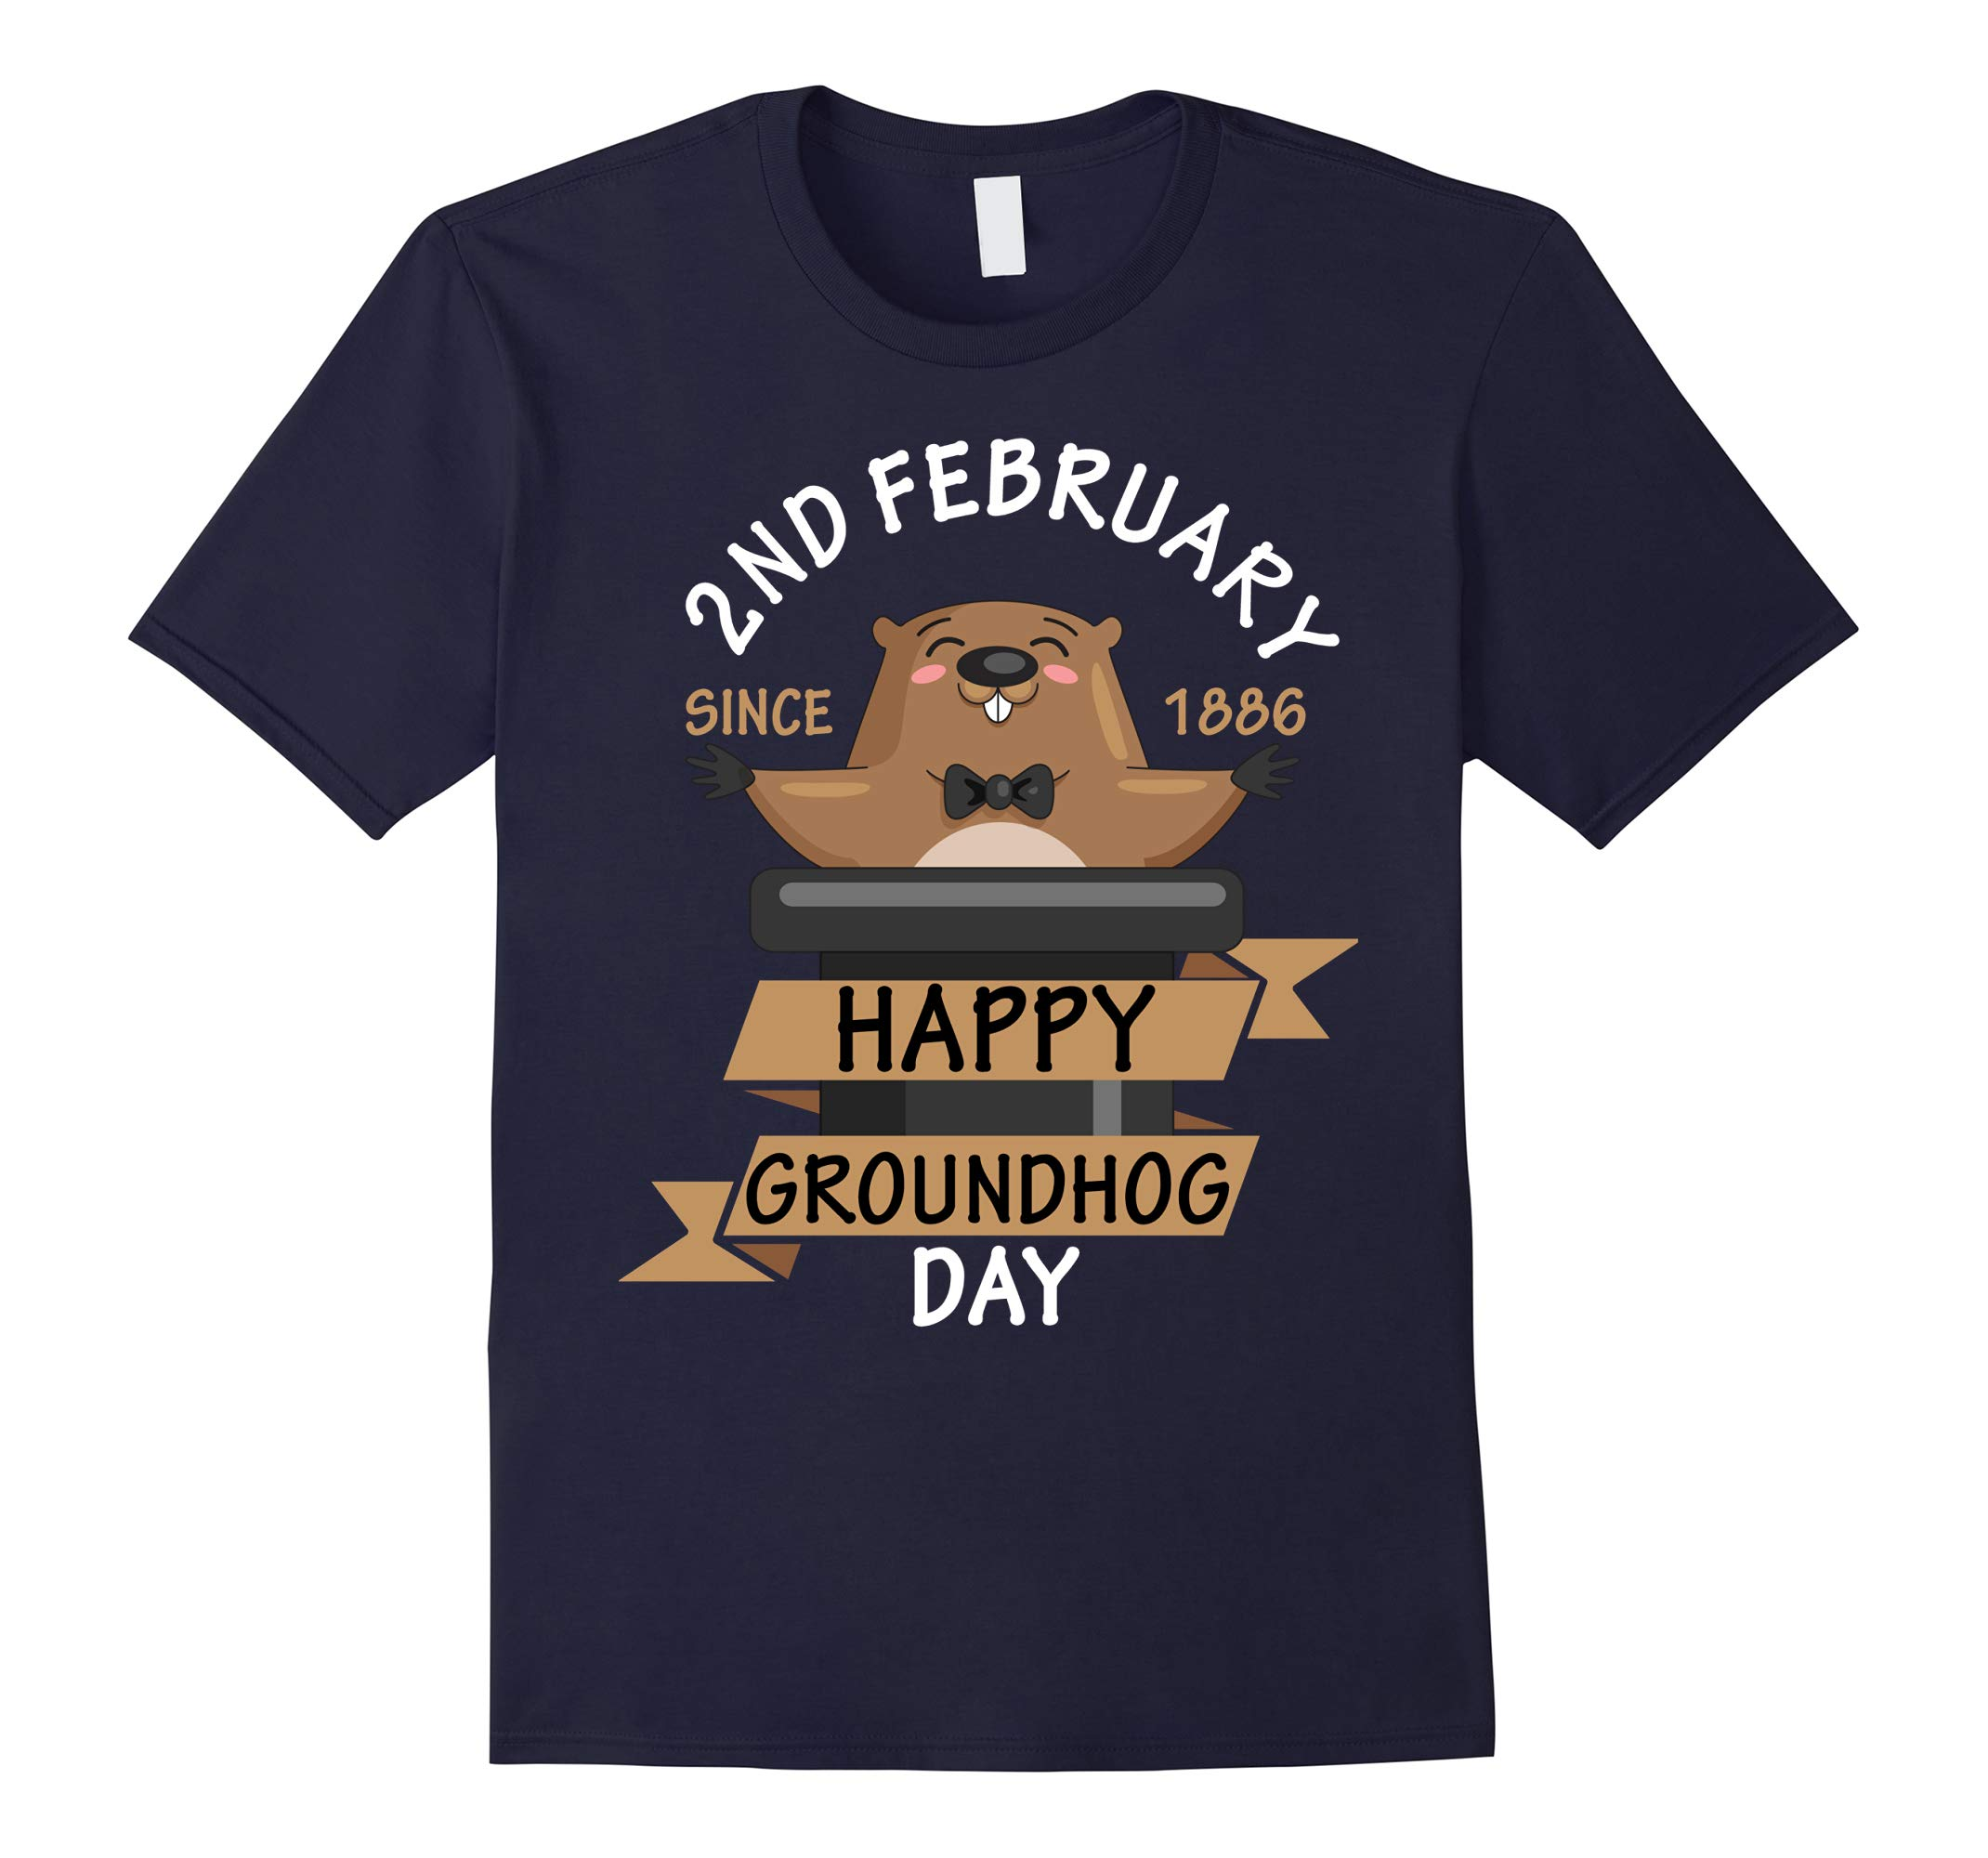 2nd February Since 1886 Happy Groundhog Day T-shirt-RT